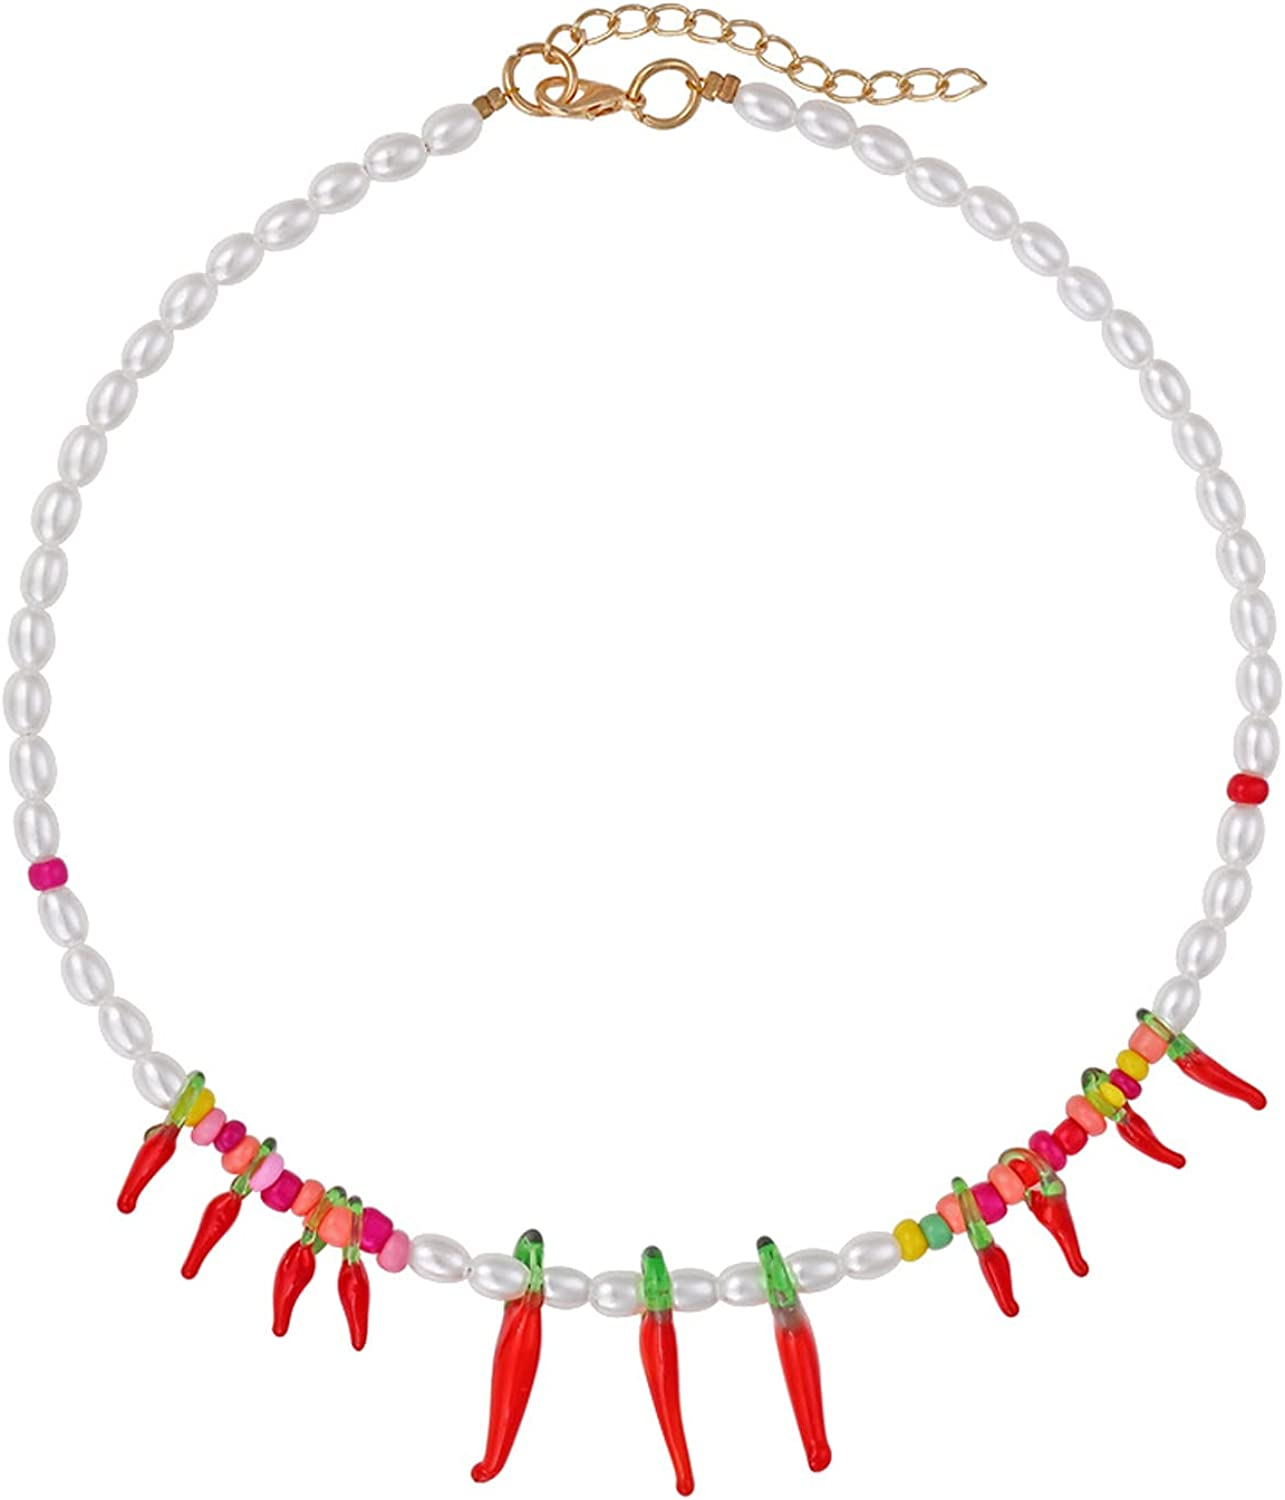 Multilayered Colorful Beaded Lemon Pepper Cherry Charm Pendant Pearl Choker Necklace for Women Girls Jewelry Party Gifts